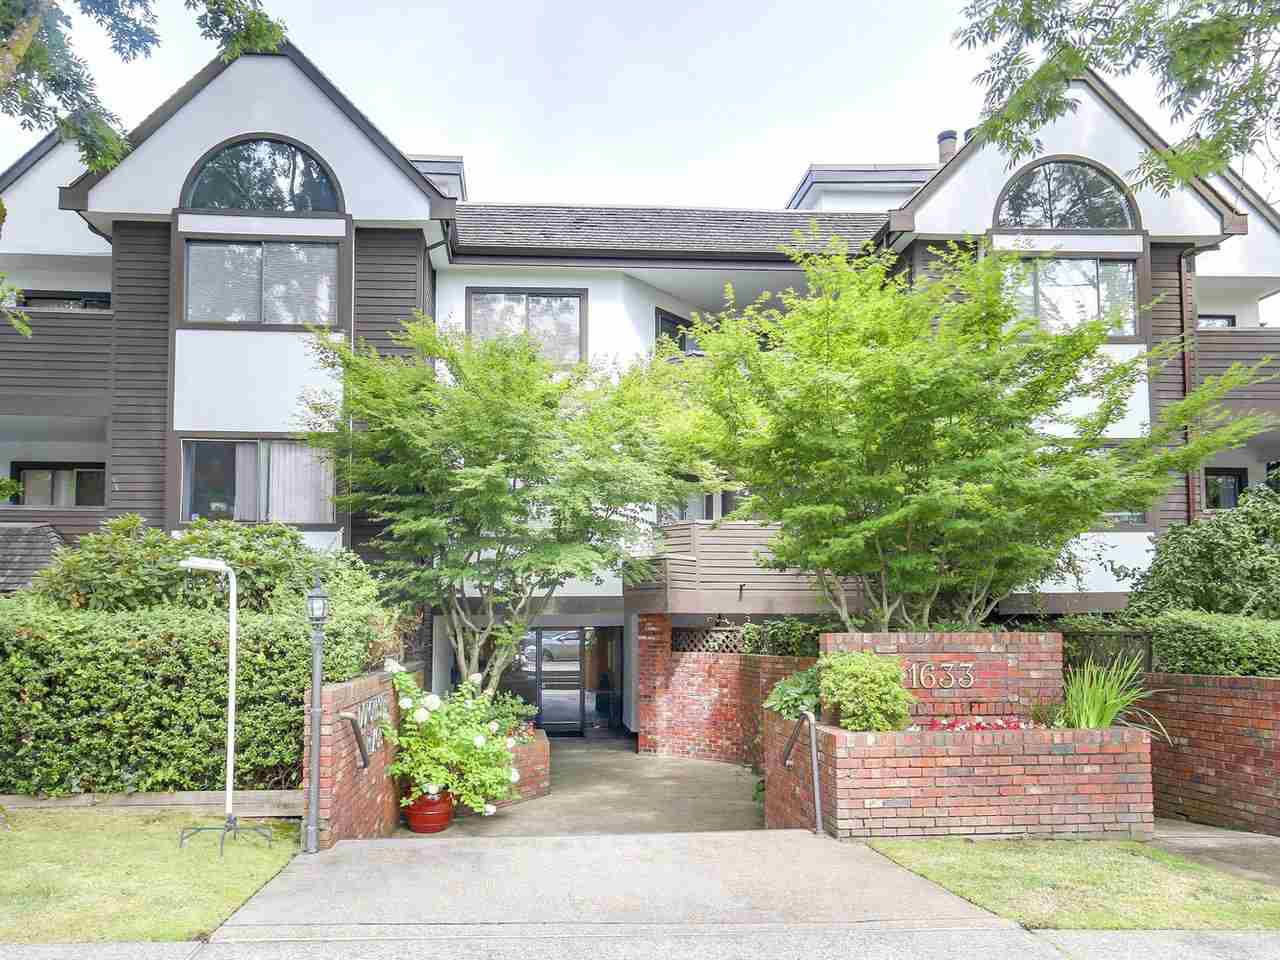 Main Photo: 206 1633 W 11TH AVENUE in Vancouver: Fairview VW Condo for sale (Vancouver West)  : MLS®# R2197304